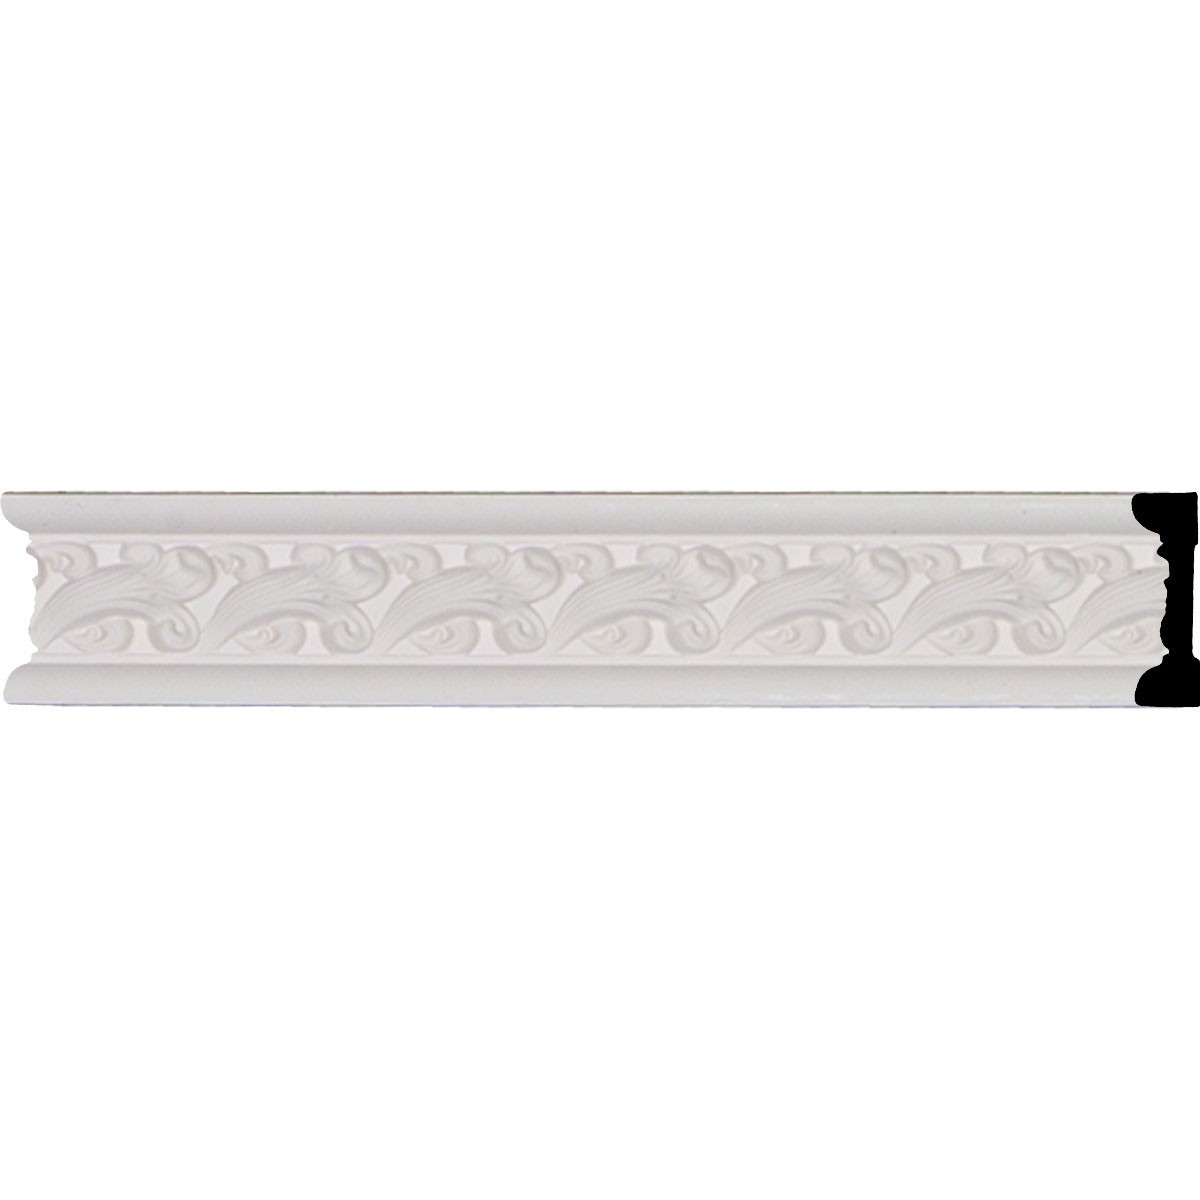 "EM-CHA02X01KN - 2 1/4""H x 3/4""P x 95 3/4""L, (1 7/8"" Repeat), Kinsley Chair Rail"